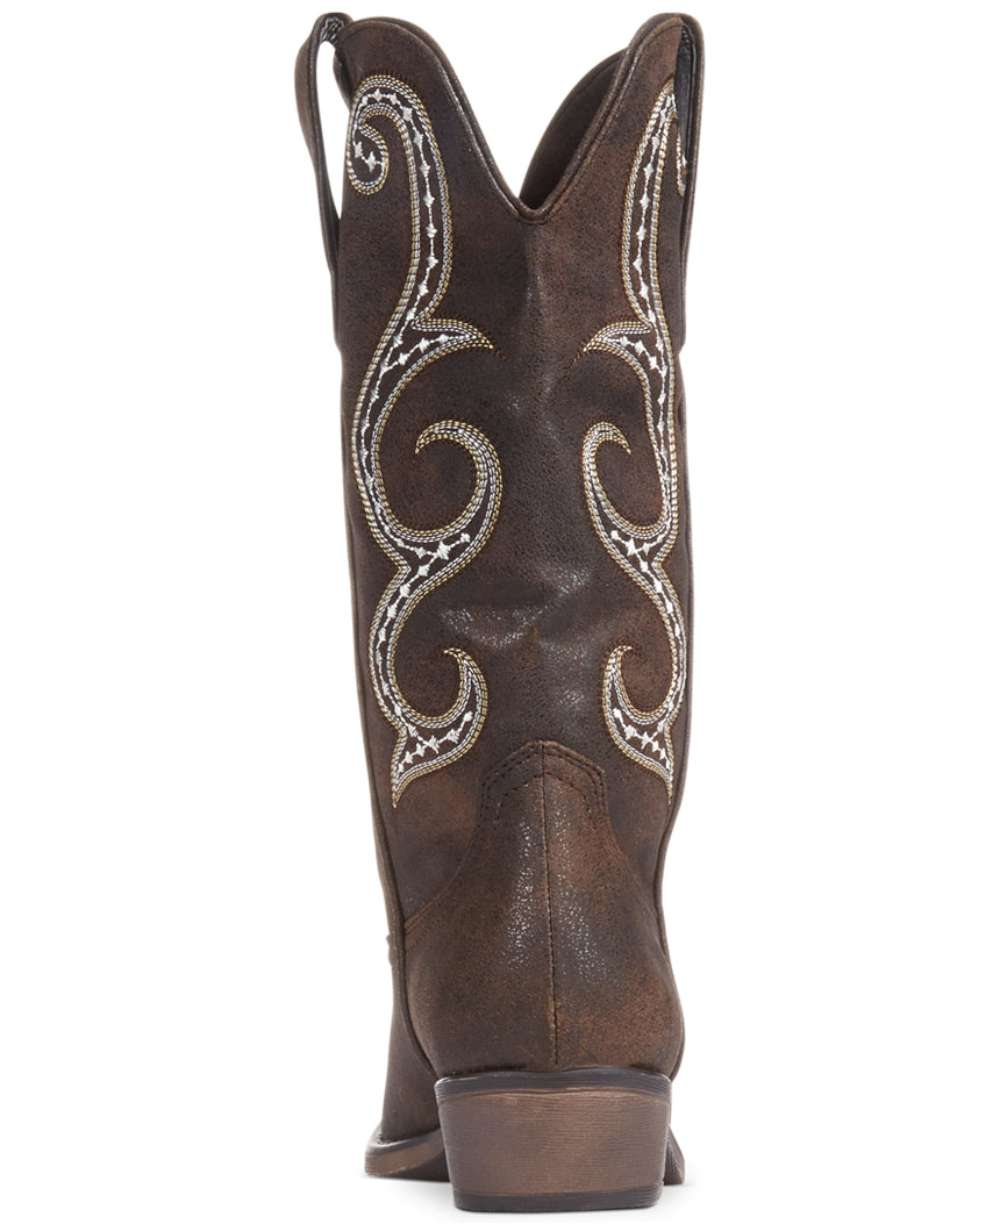 98632fc757e Details about American Rag Womens DAWNN Pointed Toe Mid-Calf Cowboy Boots,  Brown, Size 5.0 fnk